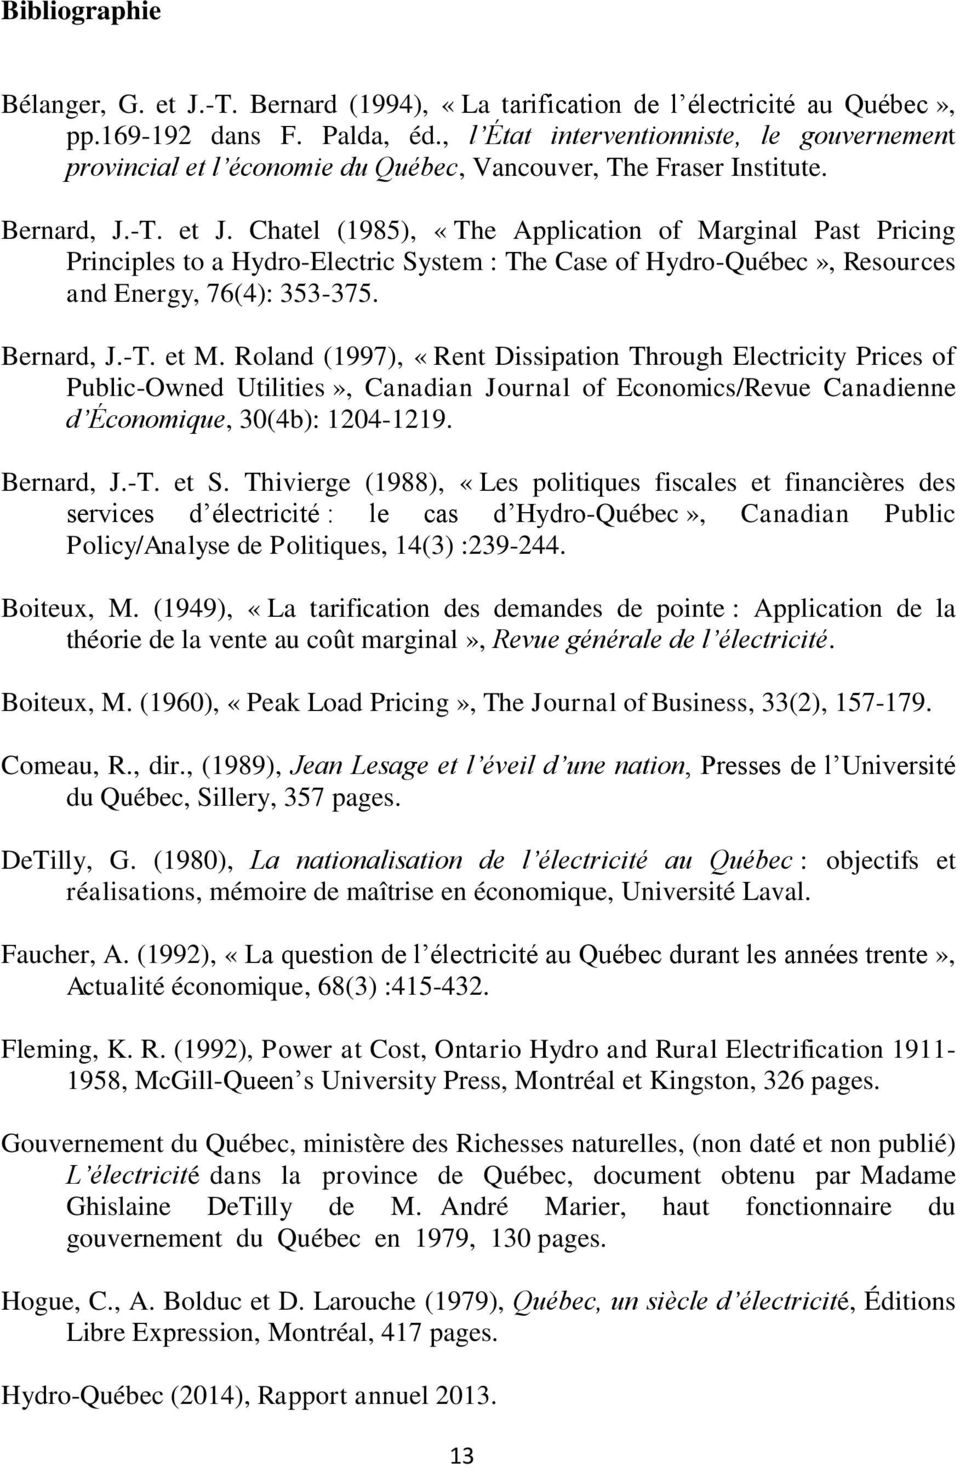 Chatel (1985), «The Application of Marginal Past Pricing Principles to a Hydro-Electric System : The Case of Hydro-Québec», Resources and Energy, 76(4): 353-375. Bernard, J.-T. et M.